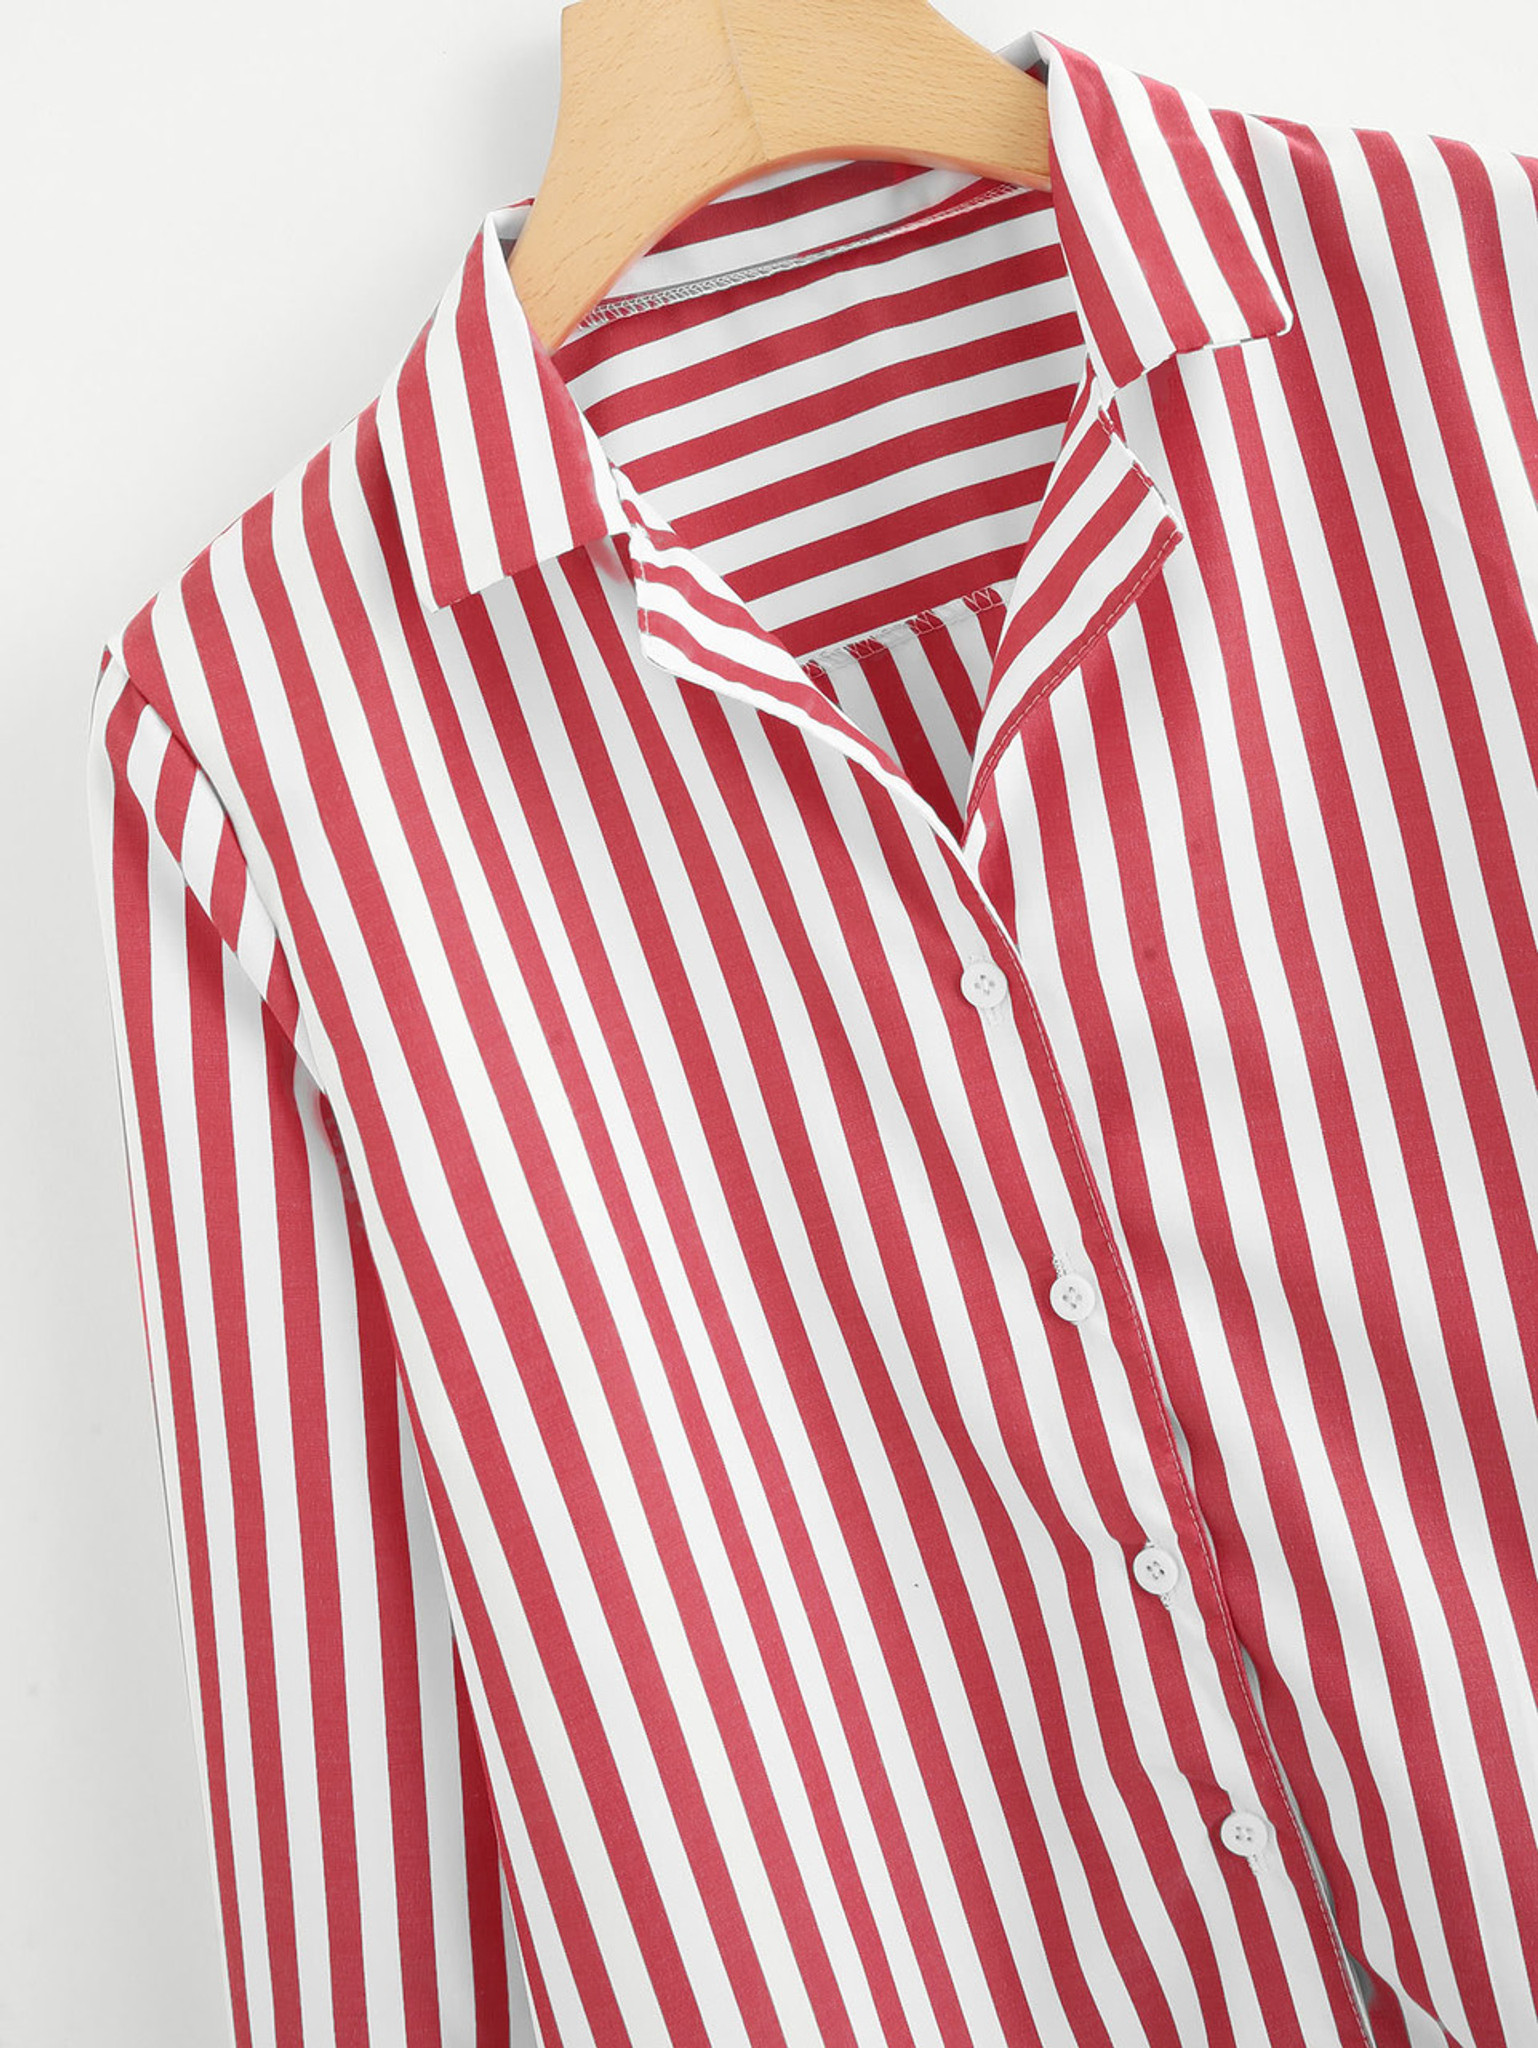 c14d5746 Fifth Avenue Women's Single Breasted Striped Button Down Shirt - Red and  White